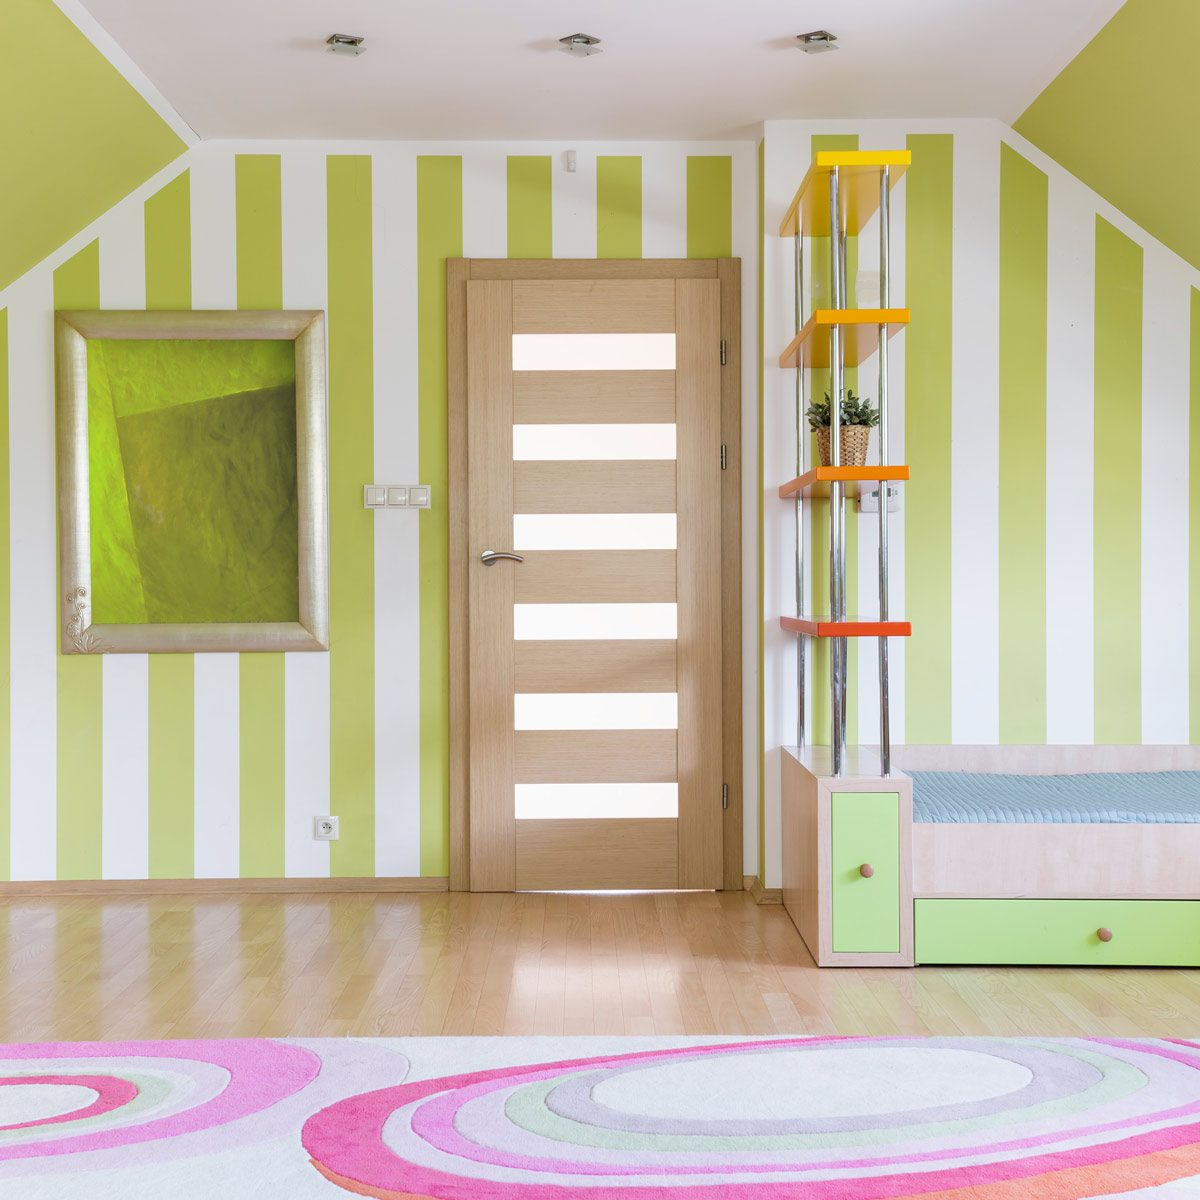 attic,wall painting,wayfair wall paintings,buy art online,wayfair wall art,interior house painters,creative wall painting techniques,saatchi art,artwork for walls,prints for sale,wall painting 3d,two toned walls painting ideas,two color wall painting ideas,creative wall painting techniques,cool paint techniques for walls,interior wall painting ideas,living room wall painting ideas,home interior painting ideas pictures,different ways to paint walls,wall painting ideas,wall painting art,wall painting mr brainwash,18 genius ideas to decorate boring walls,15 different wall painting ideas,4 wall painting ideas for easy method,wall art